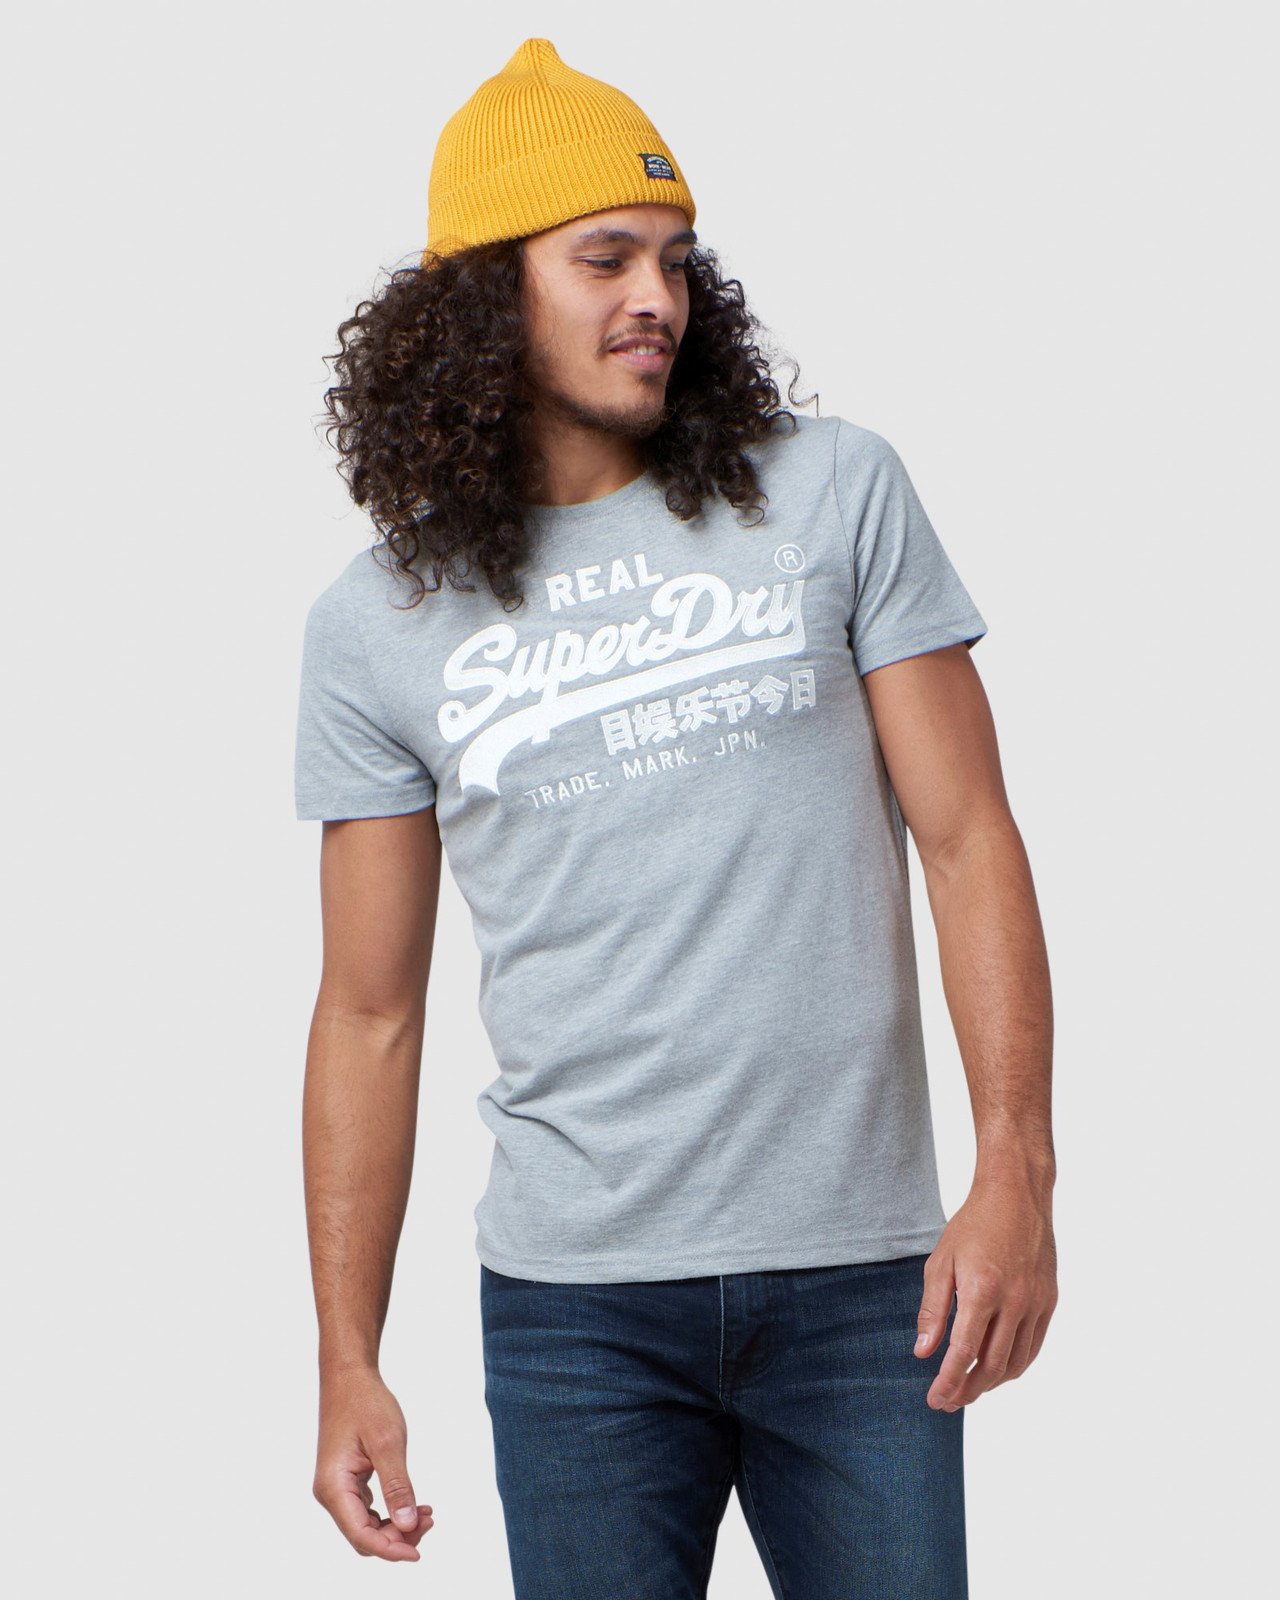 Superdry Mens Vintage Logo Embroidery Tee Grey Printed T Shirts 0